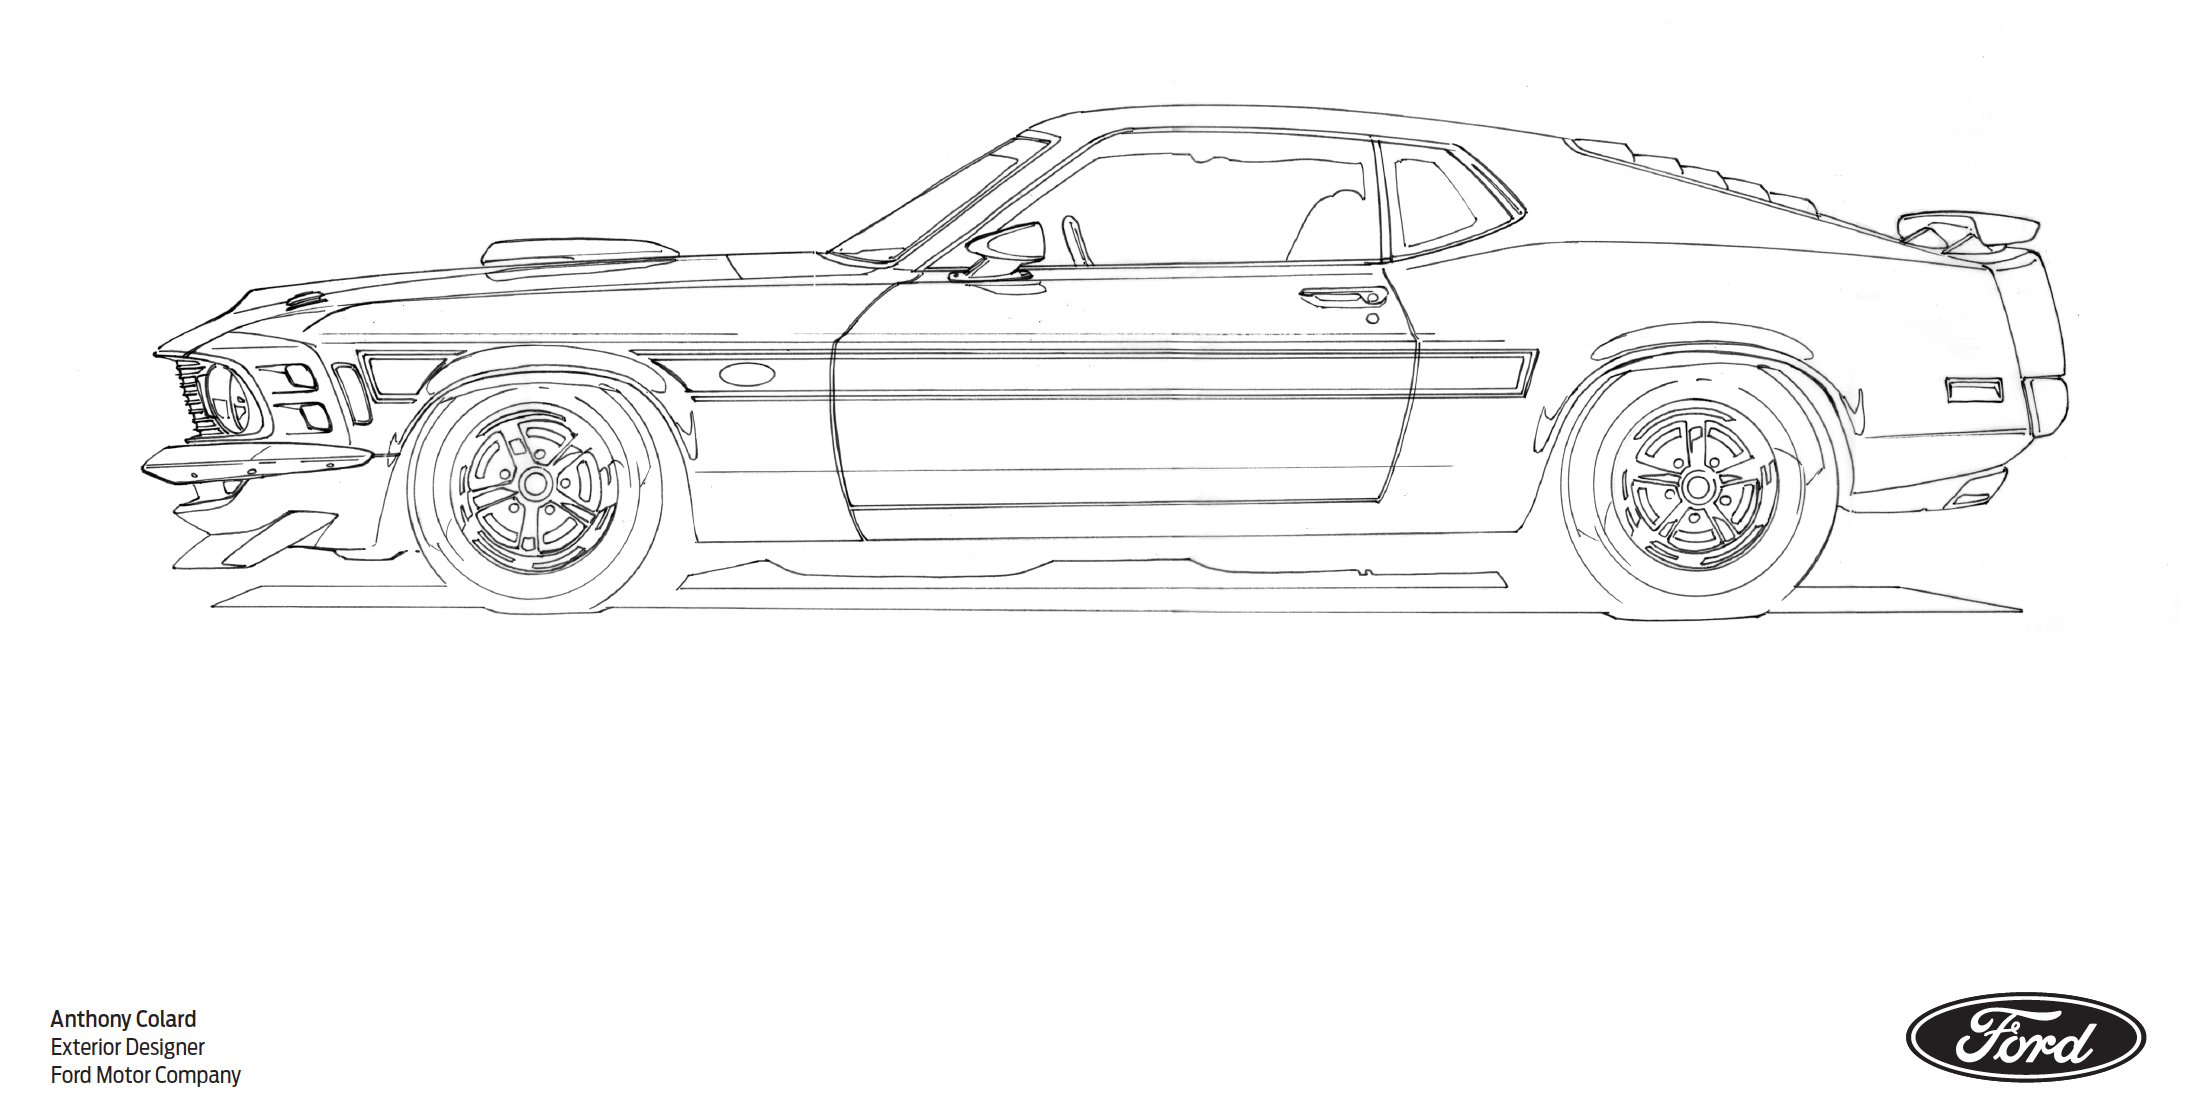 1970 Mustang Mach 1 coloring page